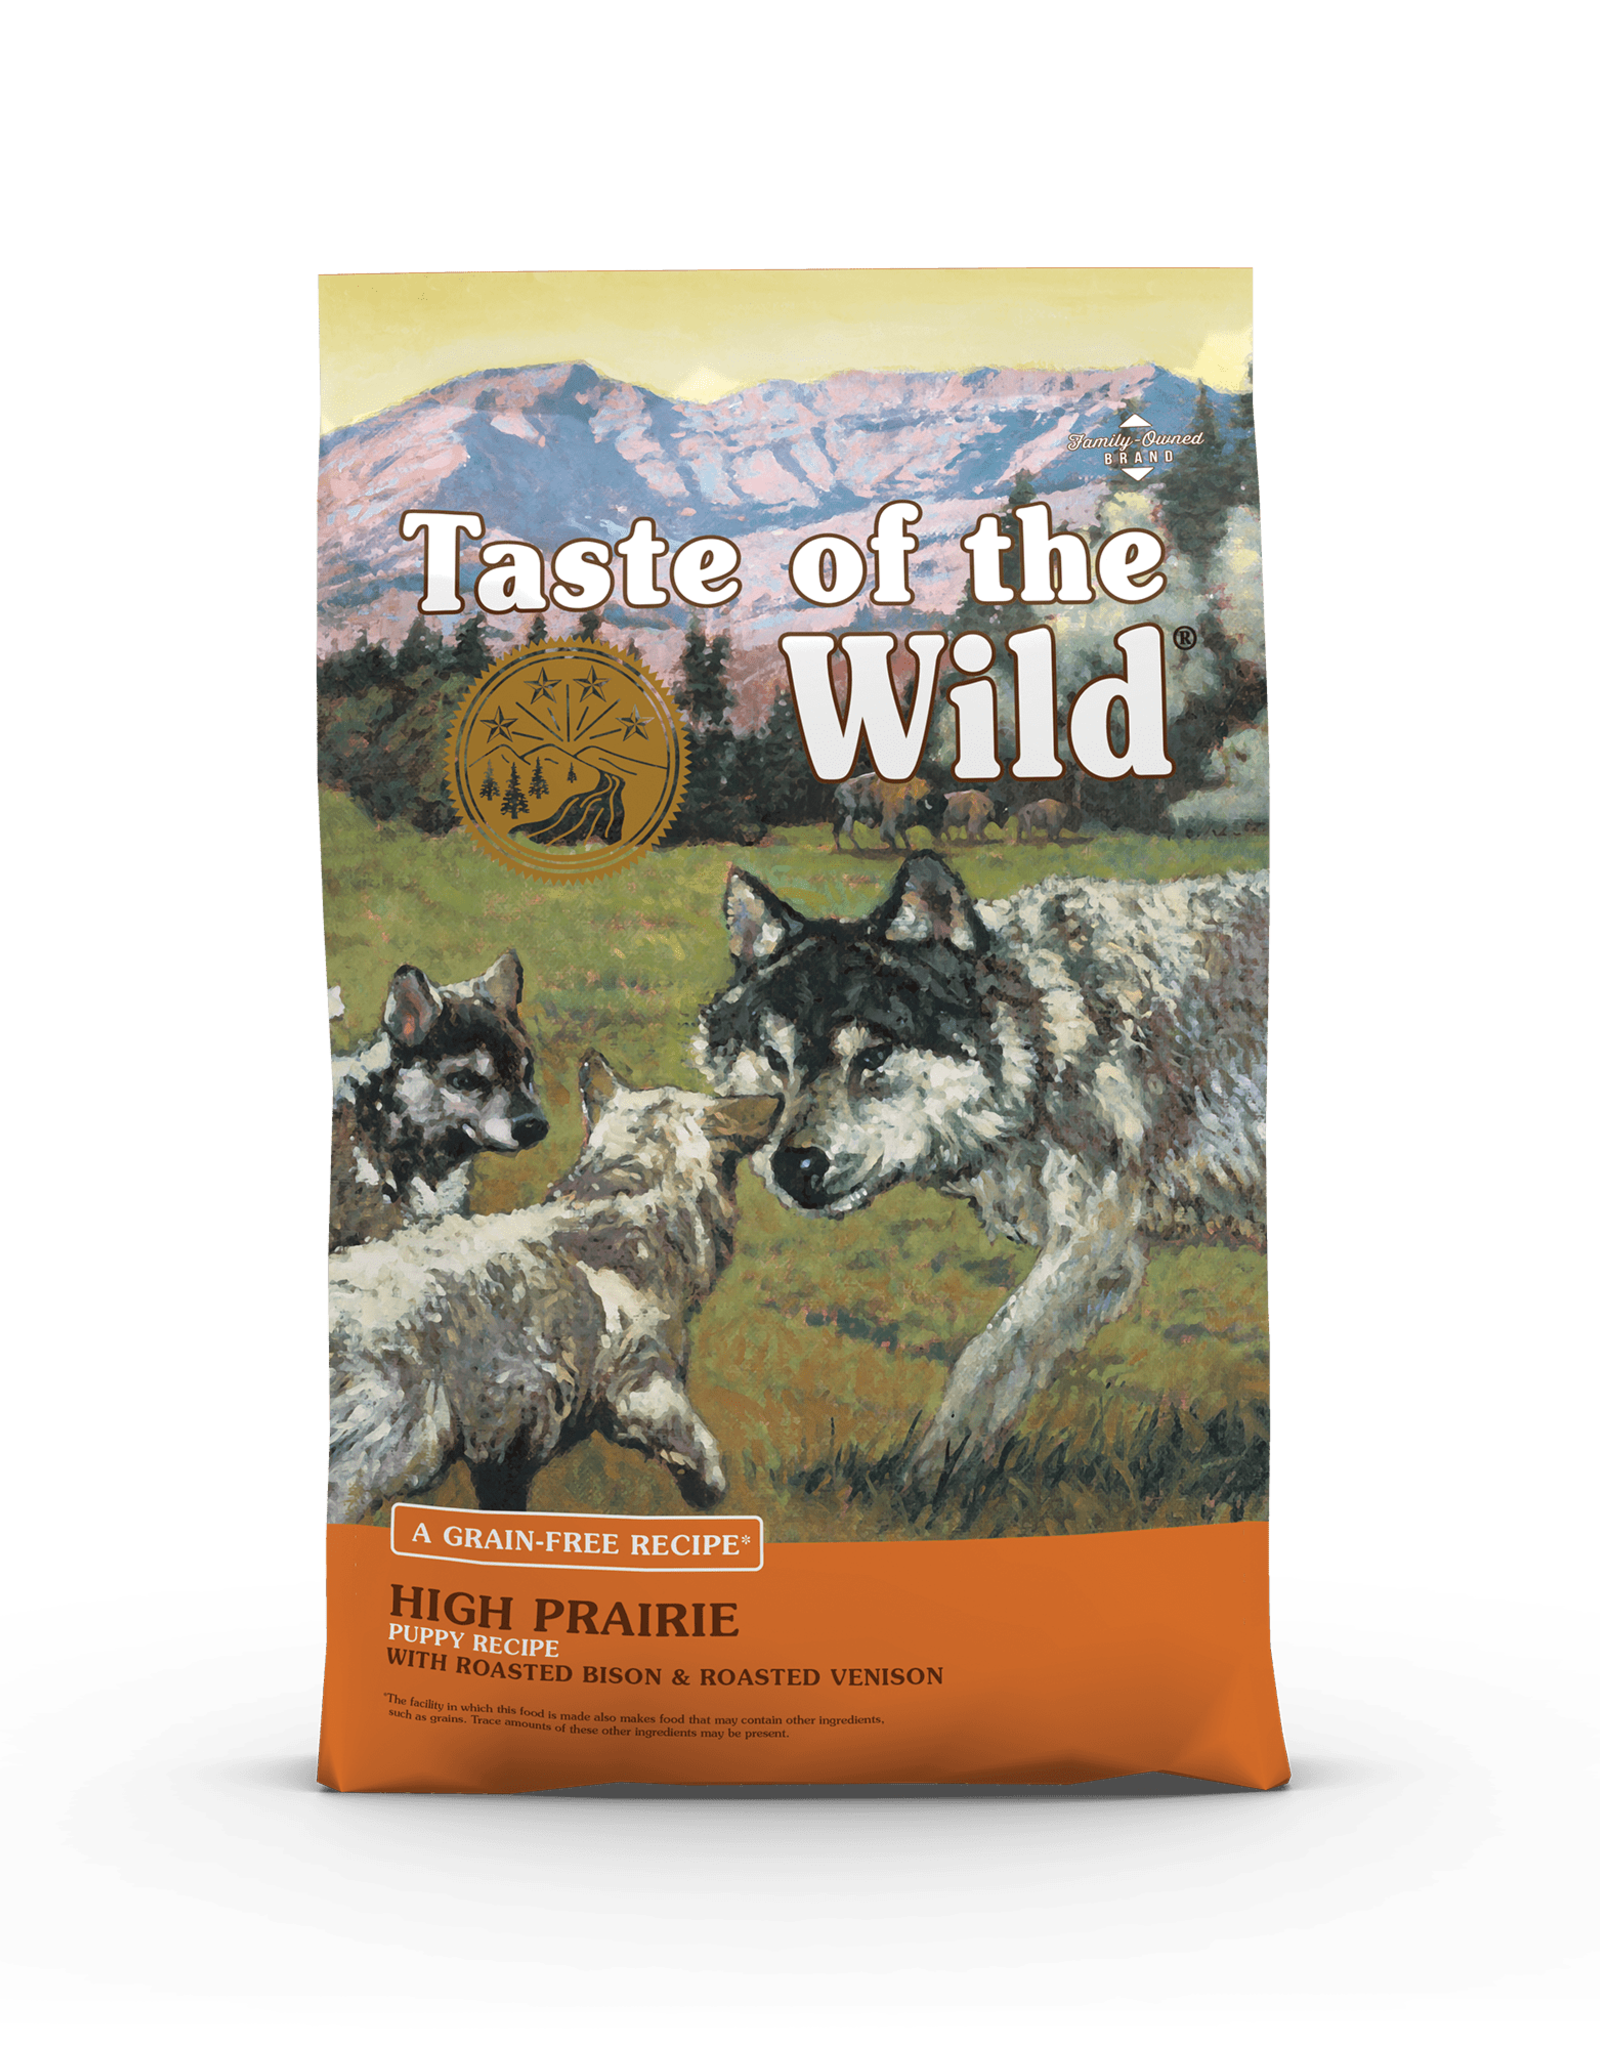 Taste of the Wild Pet Food Dog High Prairie Puppy Recipe - Grain-Free 28lb